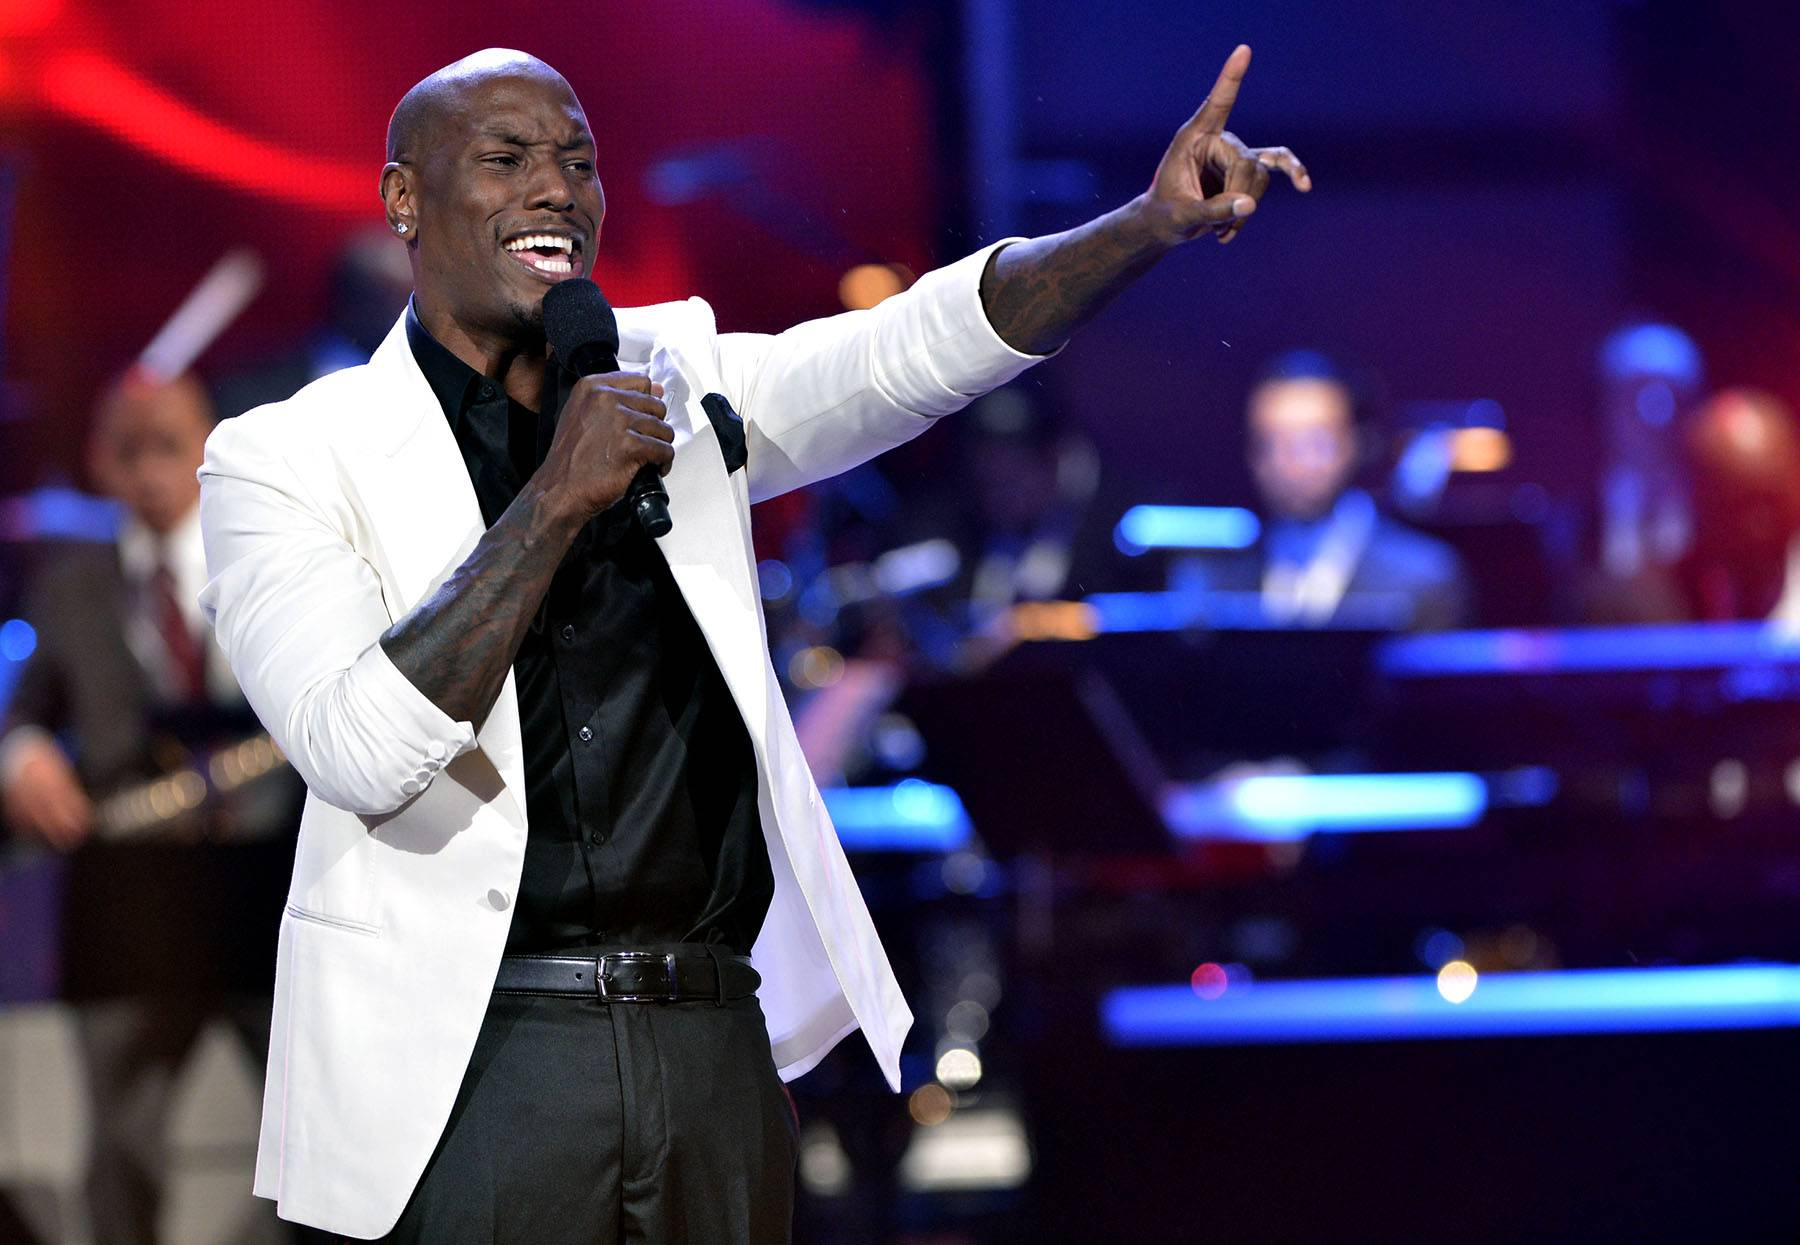 Tyrese - No stranger to the Celebration of Gospel stage, Tyrese's raw, powerful vocals can carry any tune, command a performance and will remind you of the passion that Hezekiah Walker has for his art, if even for just a moment.  (Photo: Earl Gibson III/Getty Images for BET)